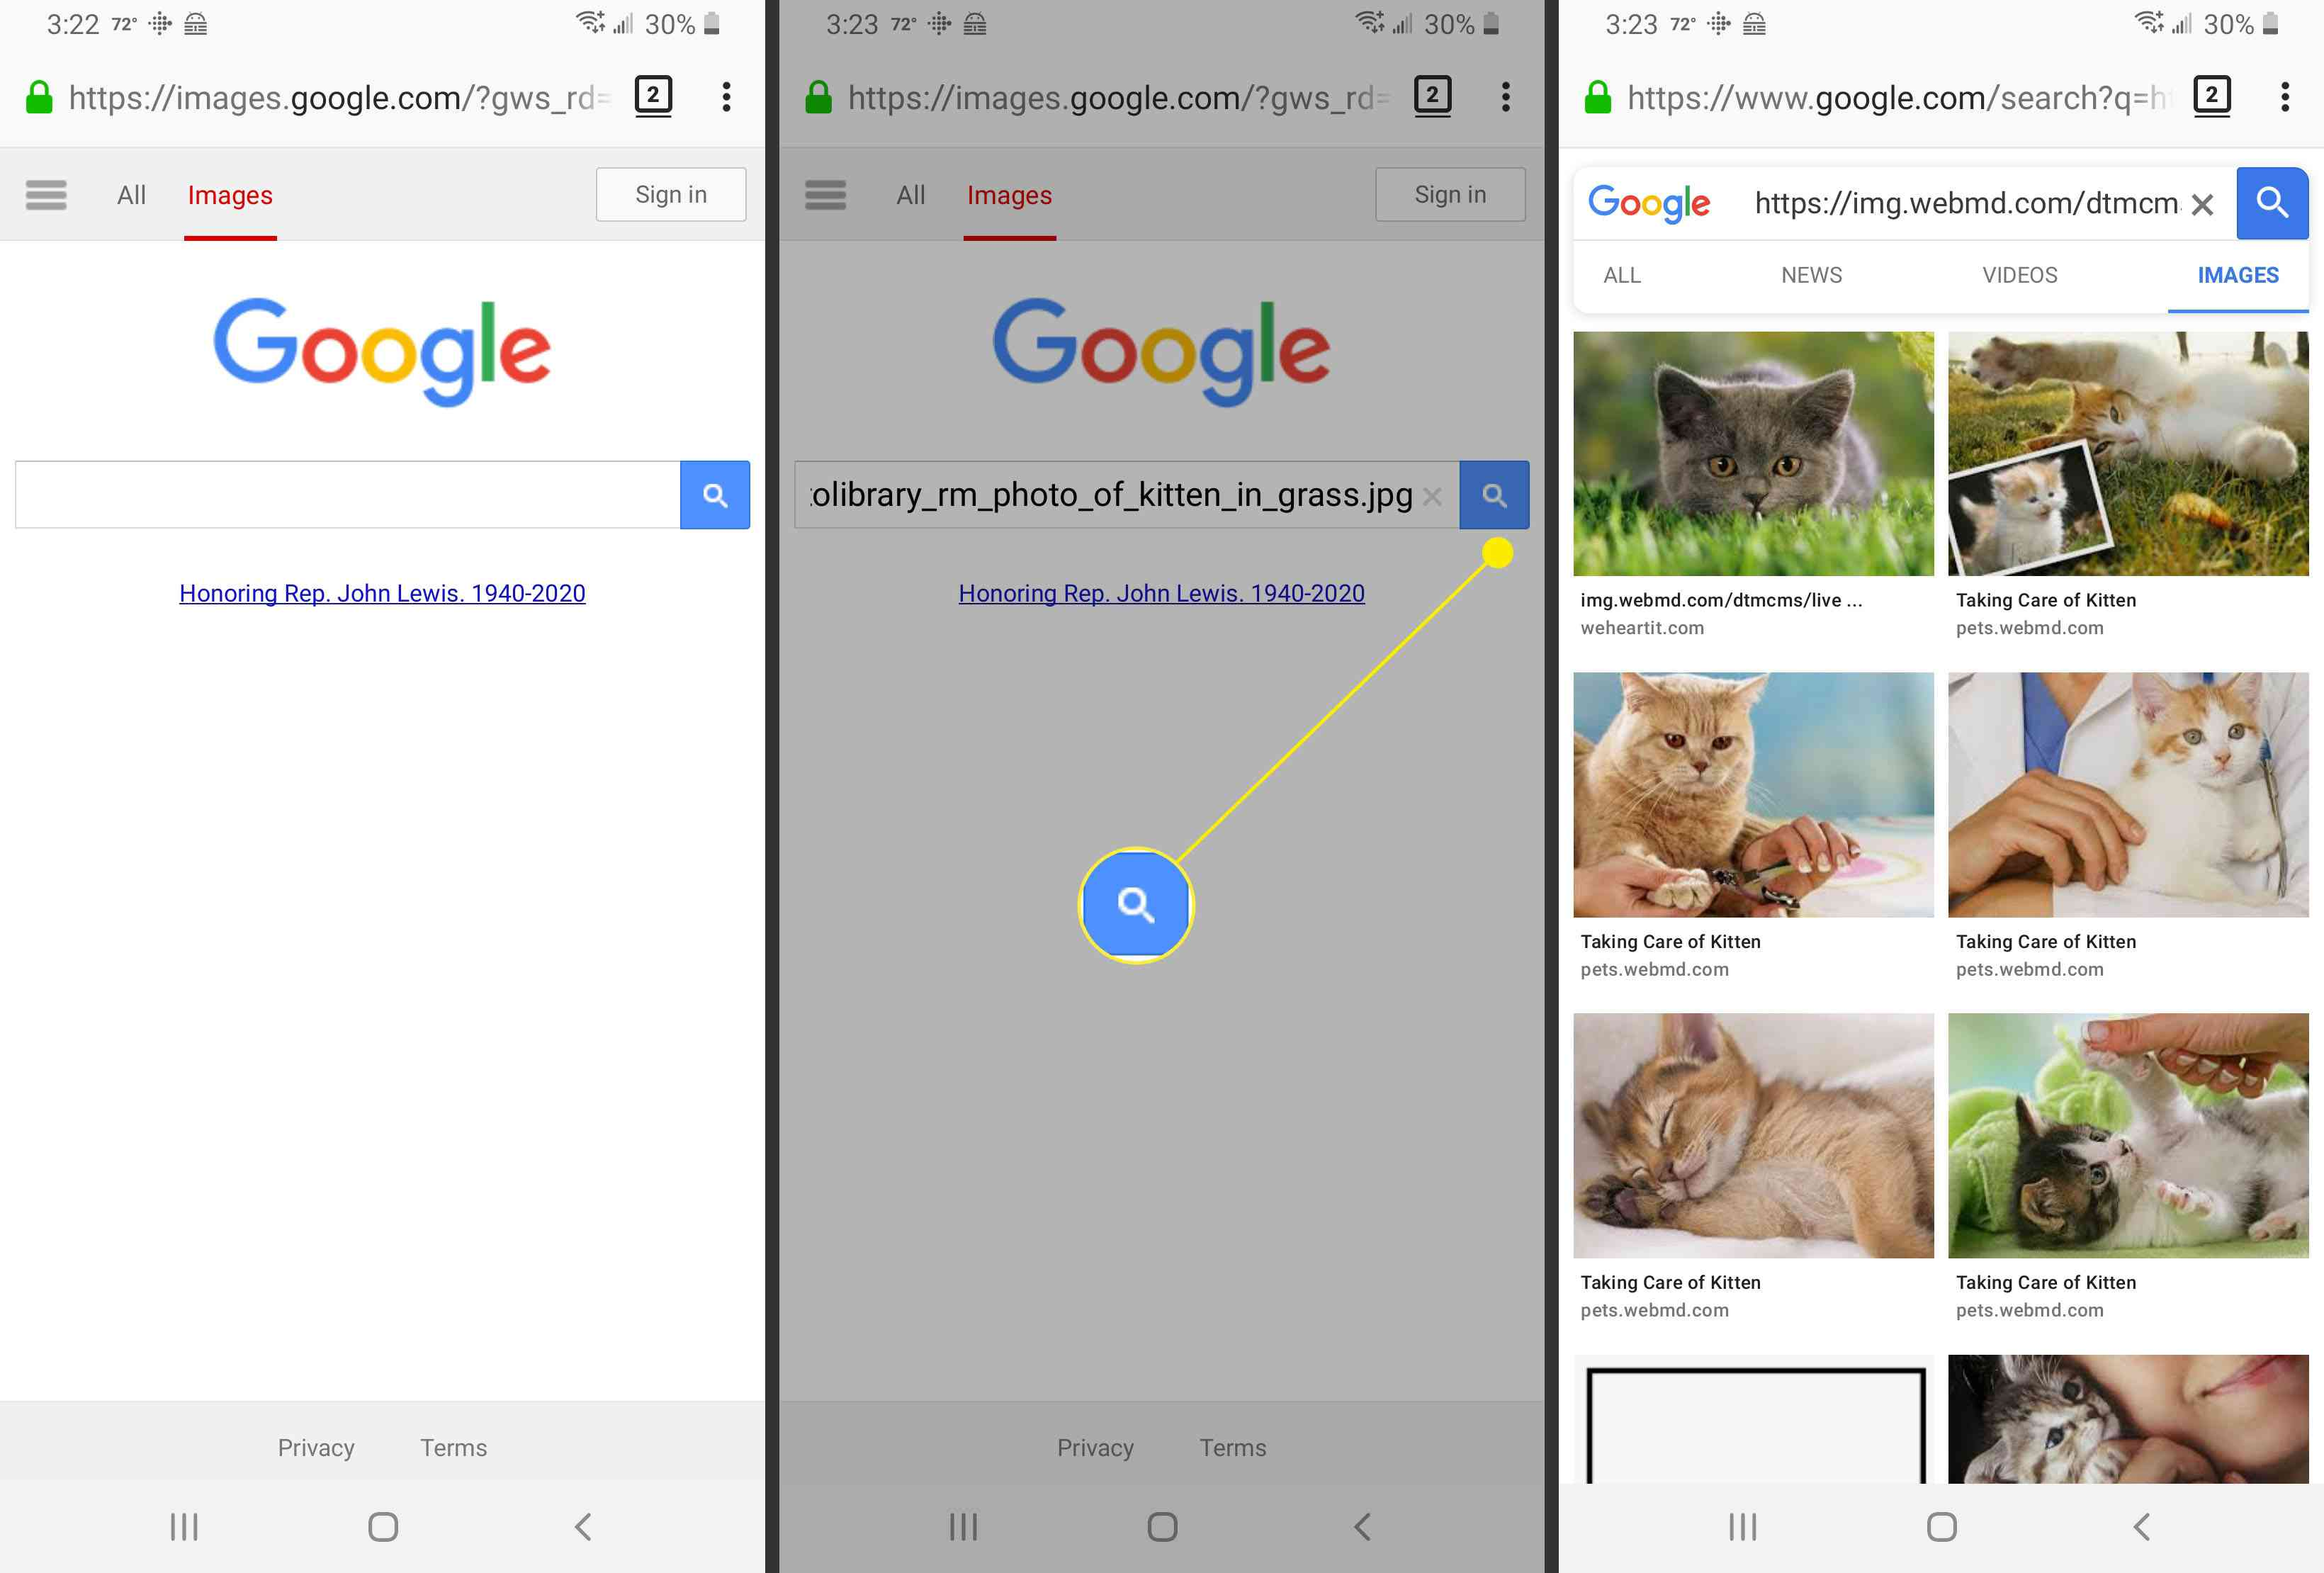 Searching for an image in Google Images.